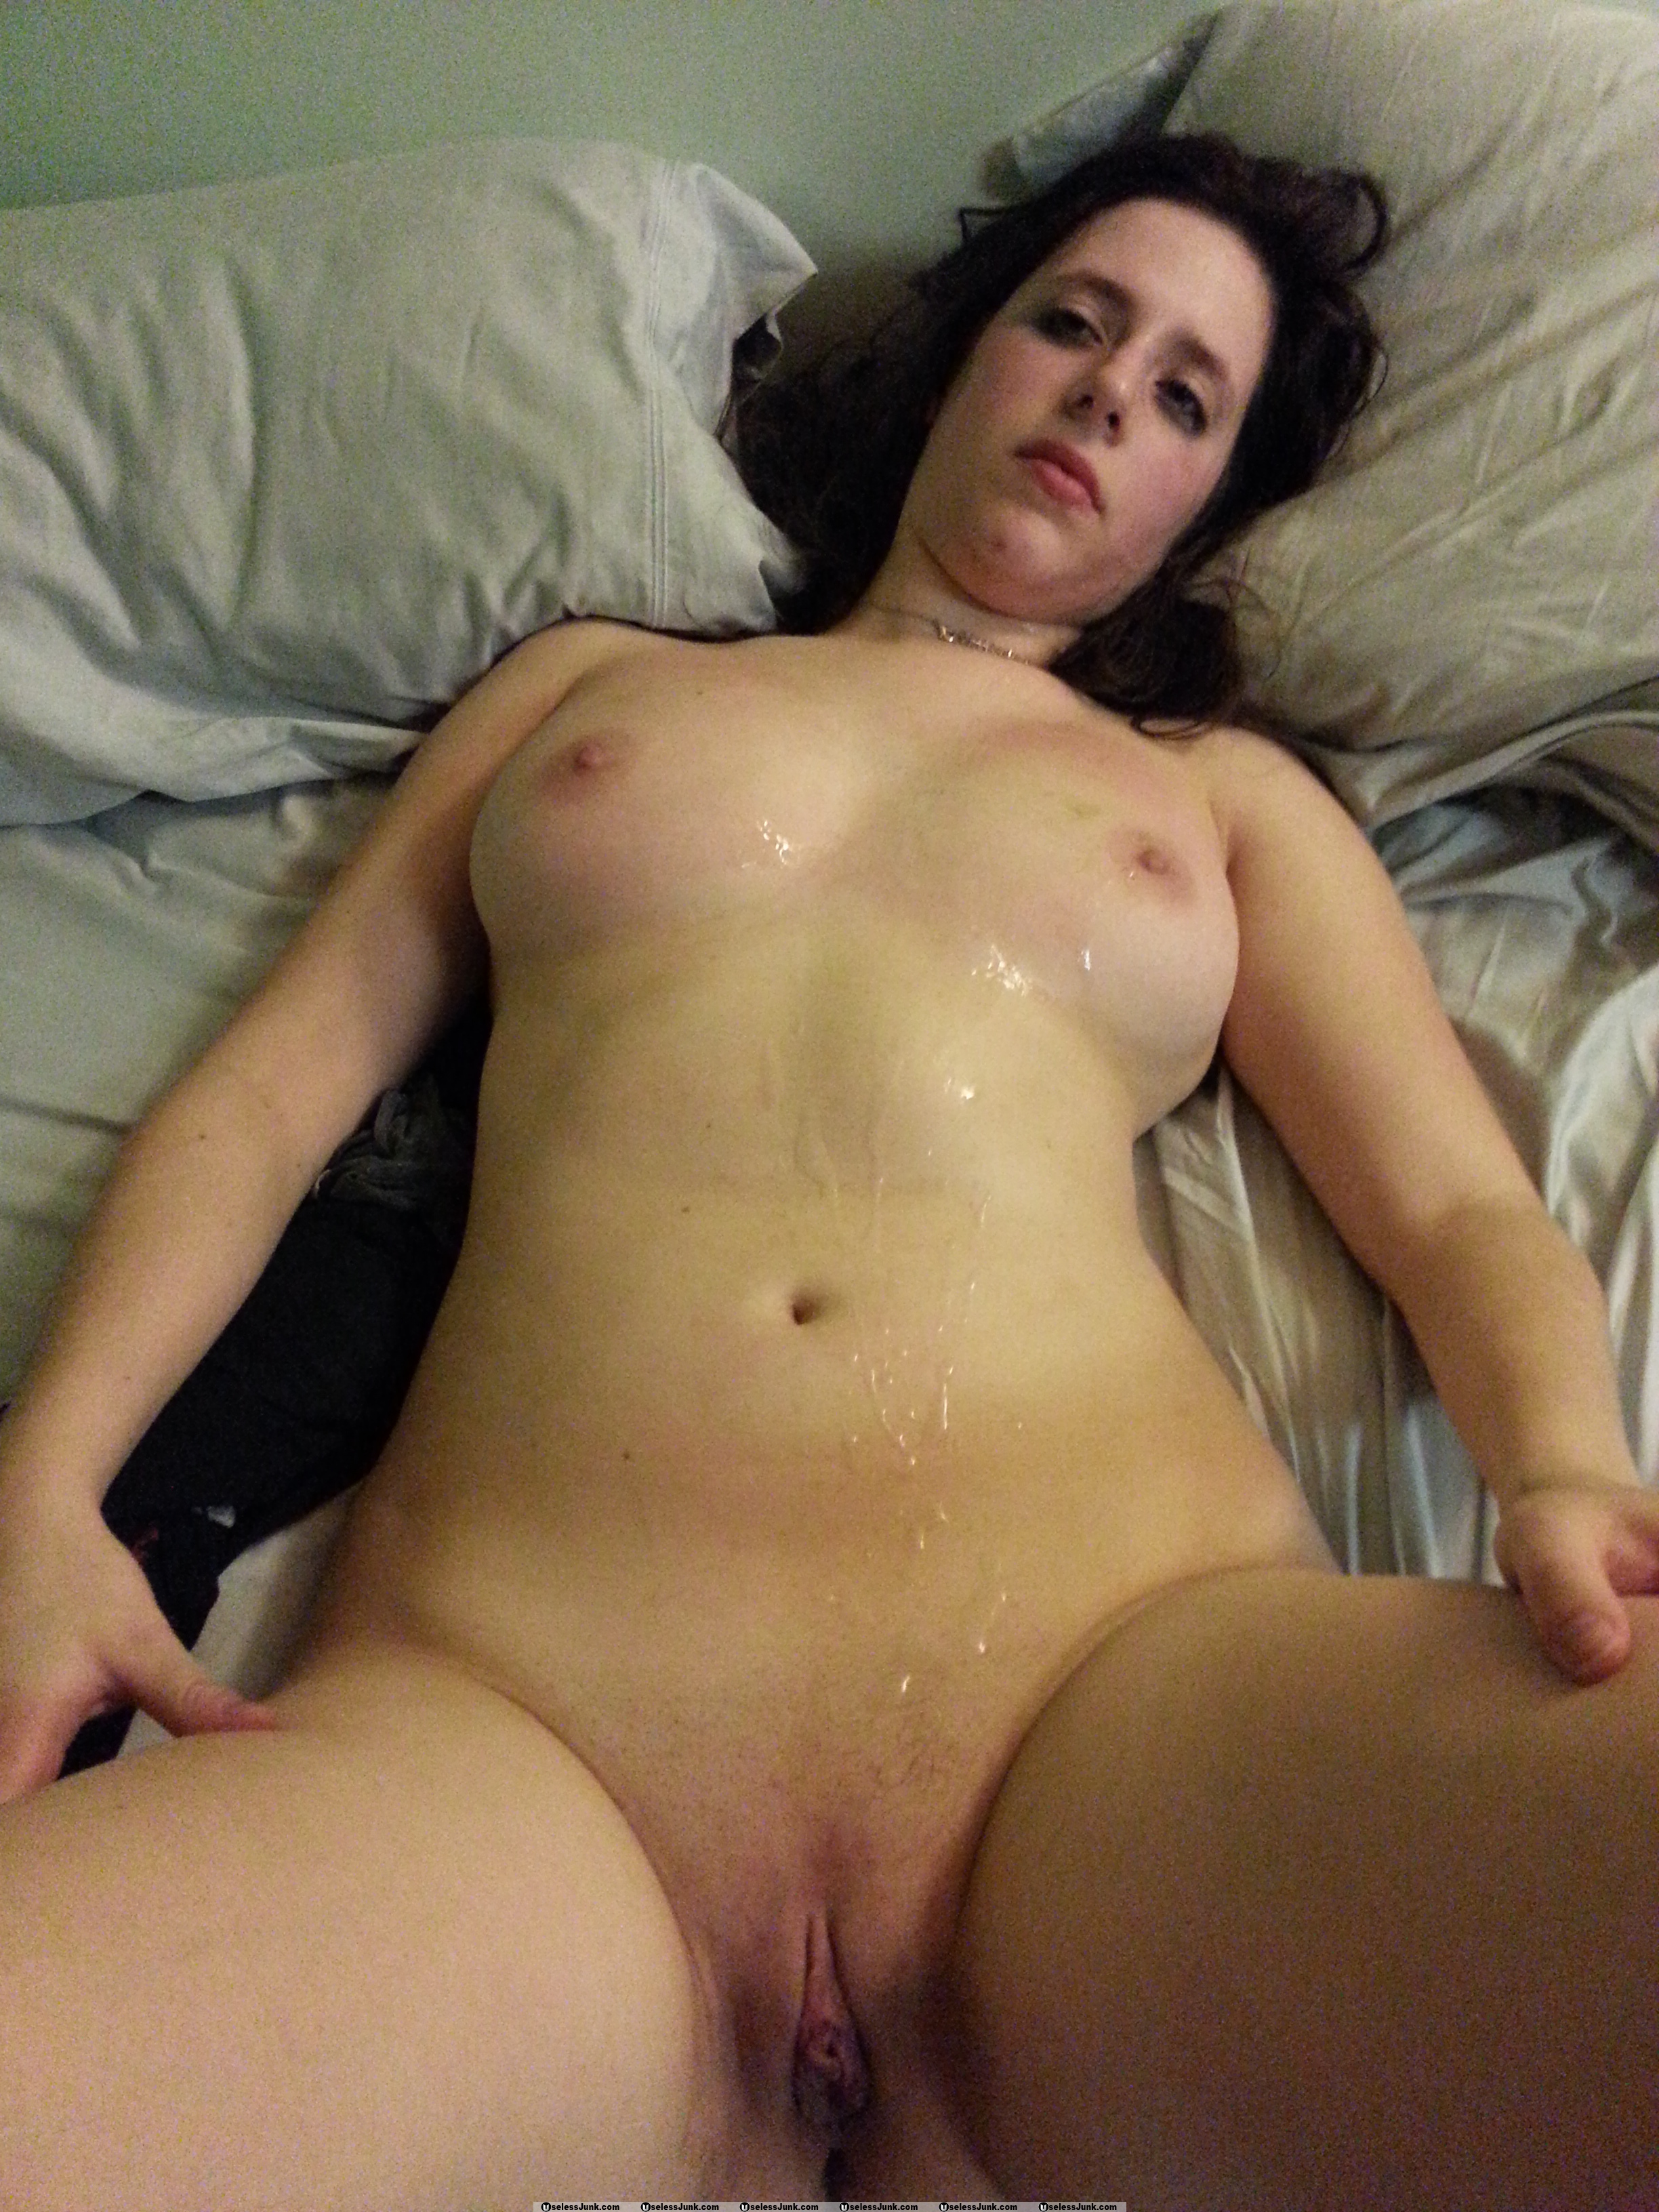 Hot wet warm pink pussy